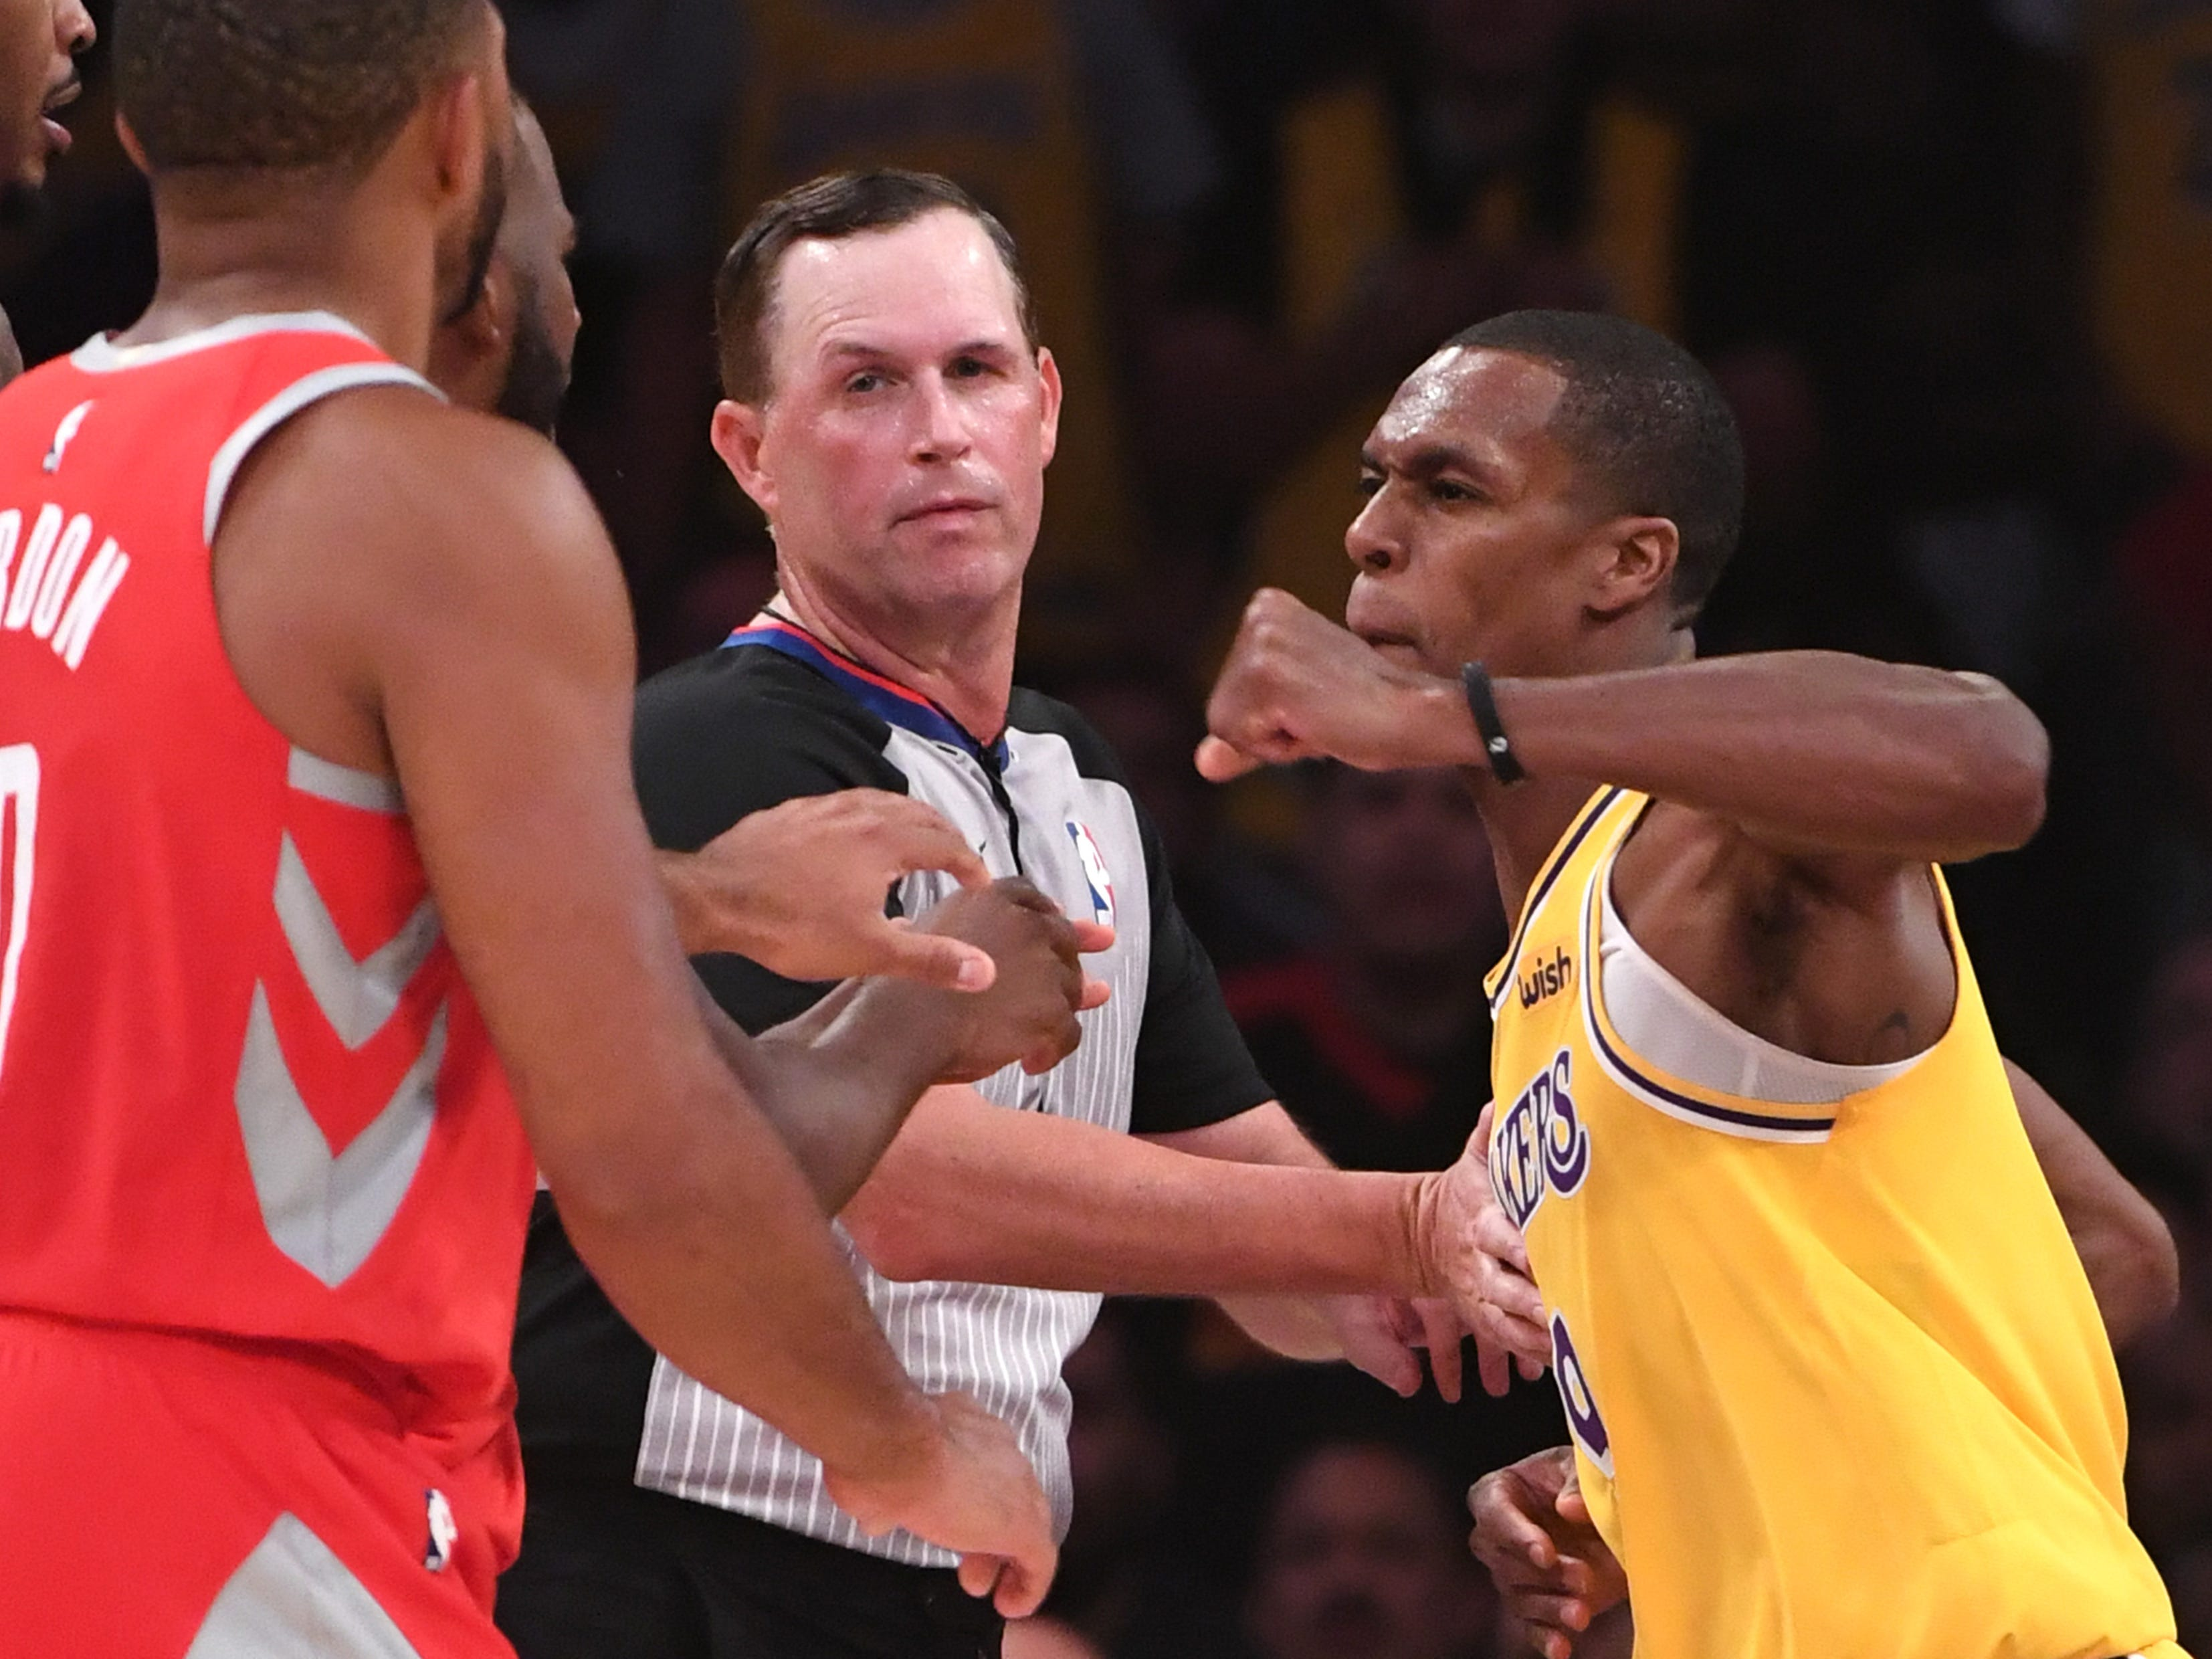 Oct. 20: Lakers guard Rajon Rondo throws a punch at Rockets guard Chris Paul during a wild fourth-quarter fracas at Staples Center.